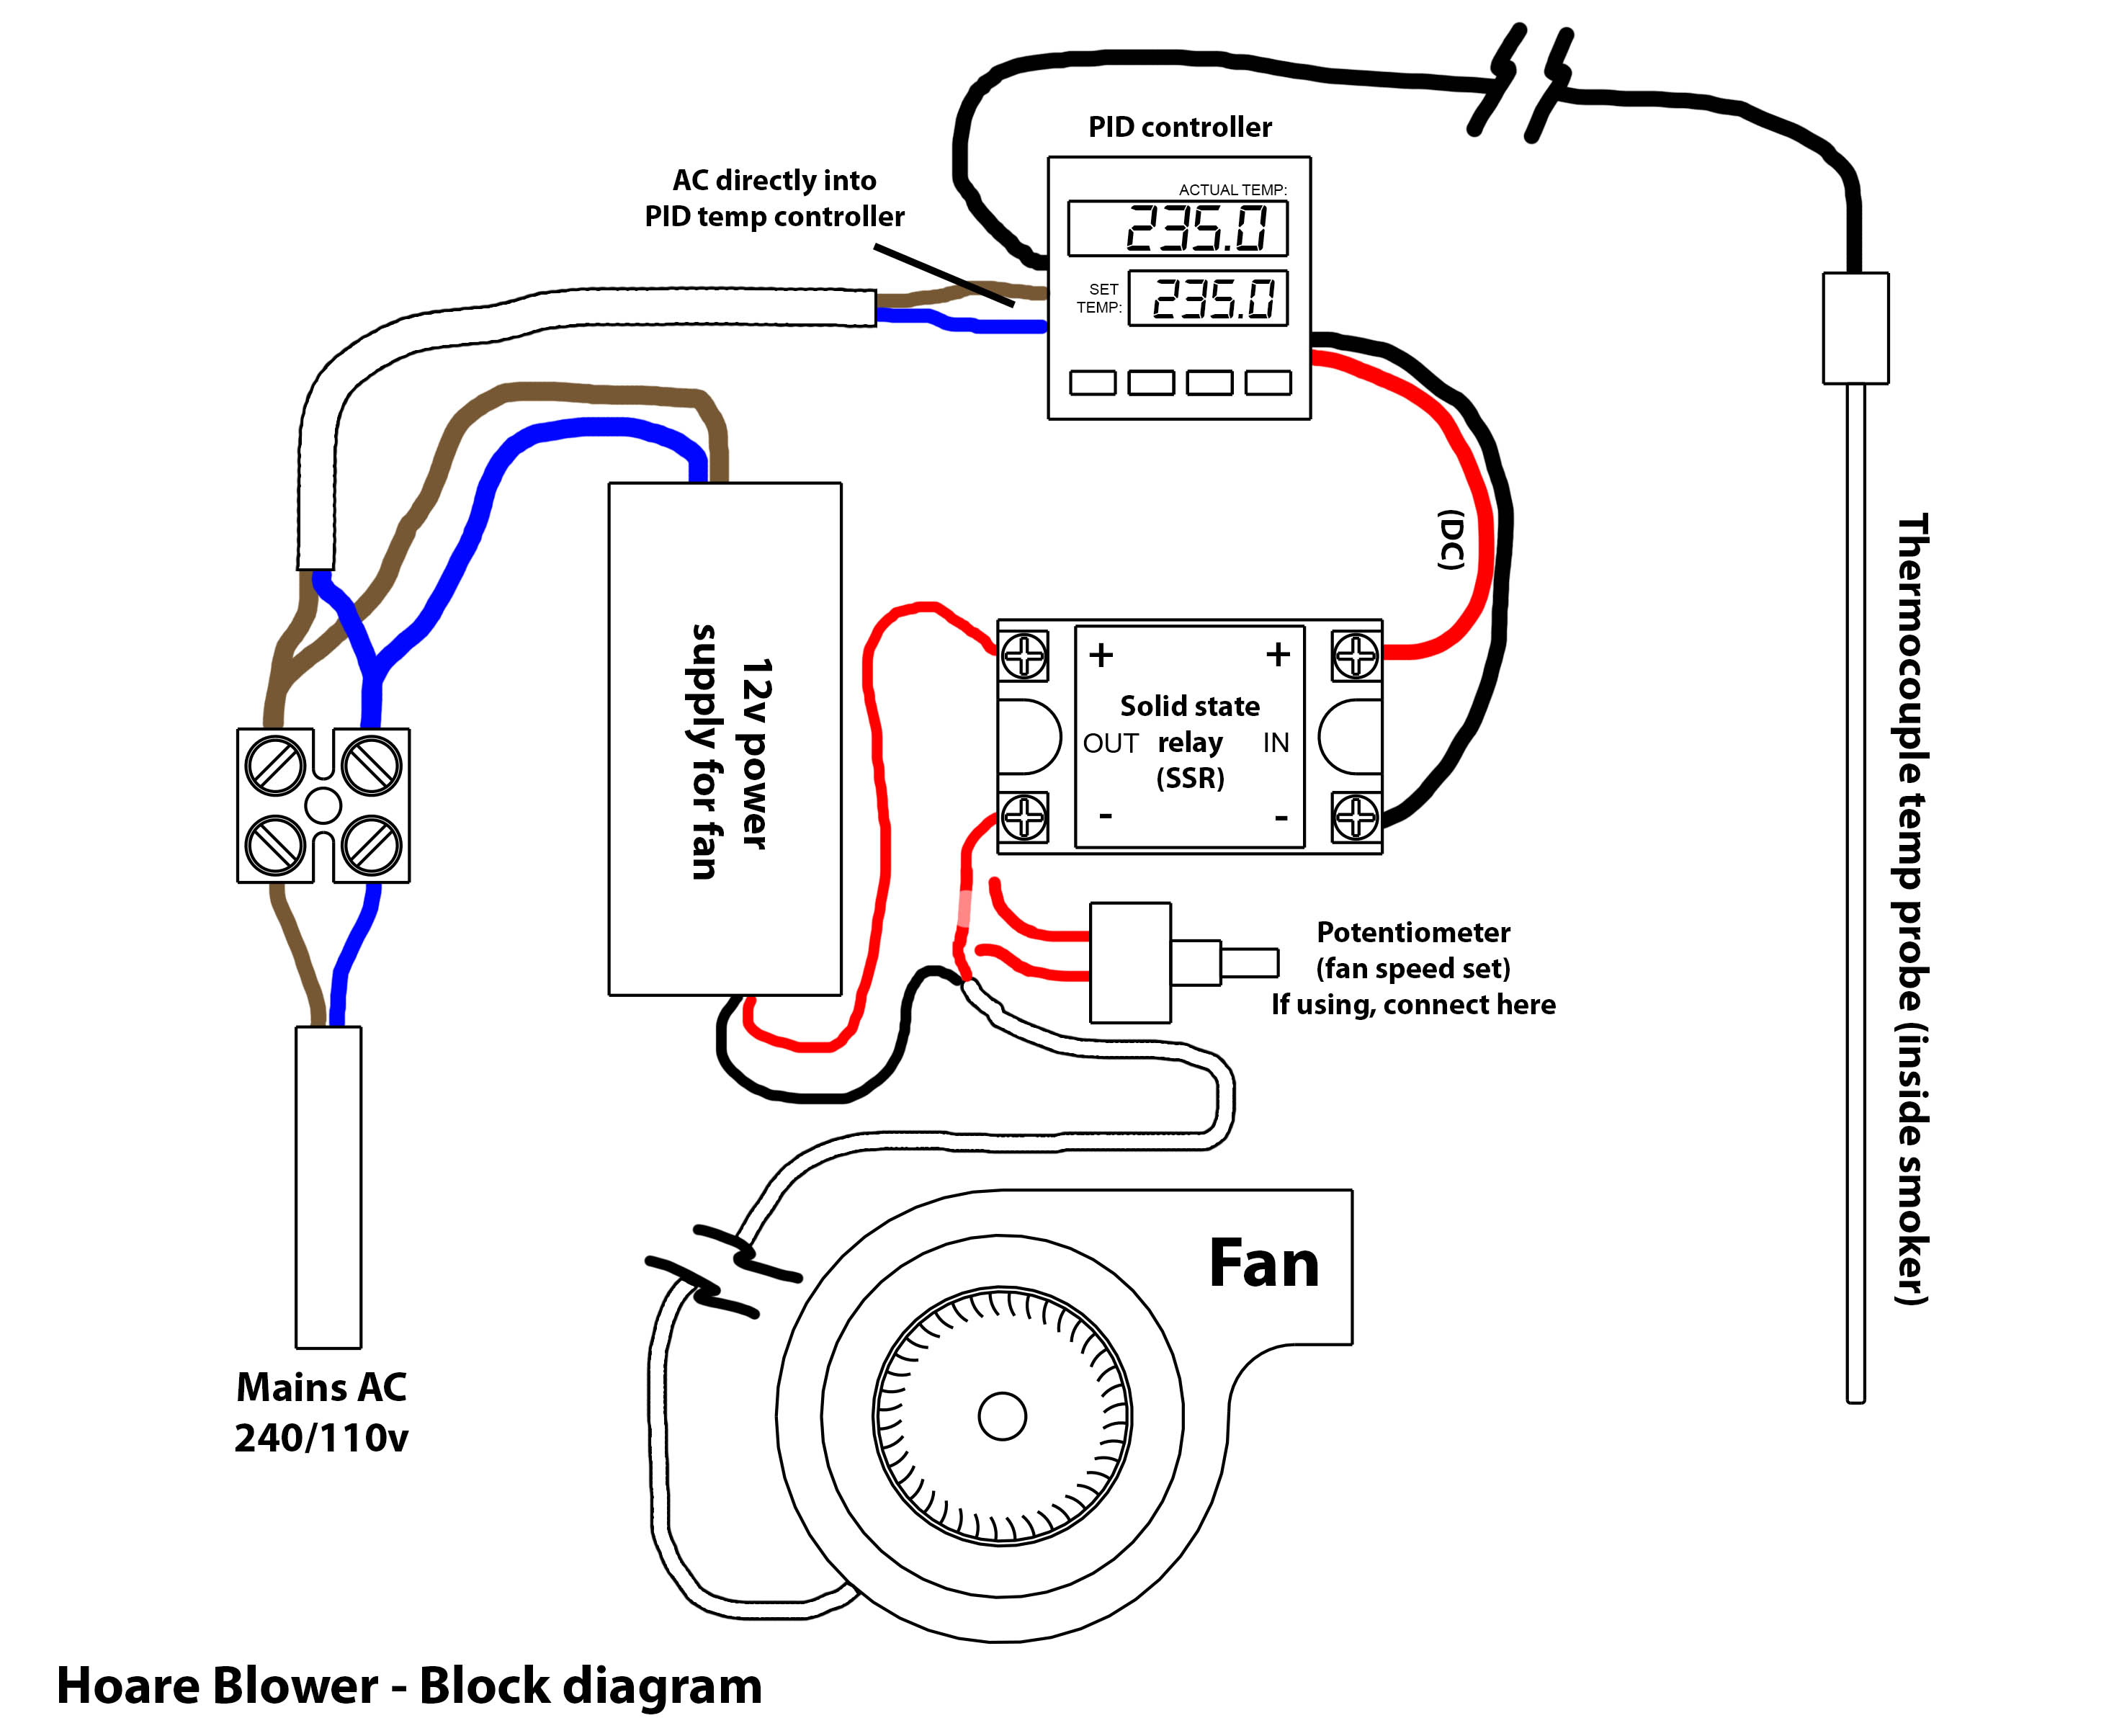 Traeger Smoker Part Wiring Diagram